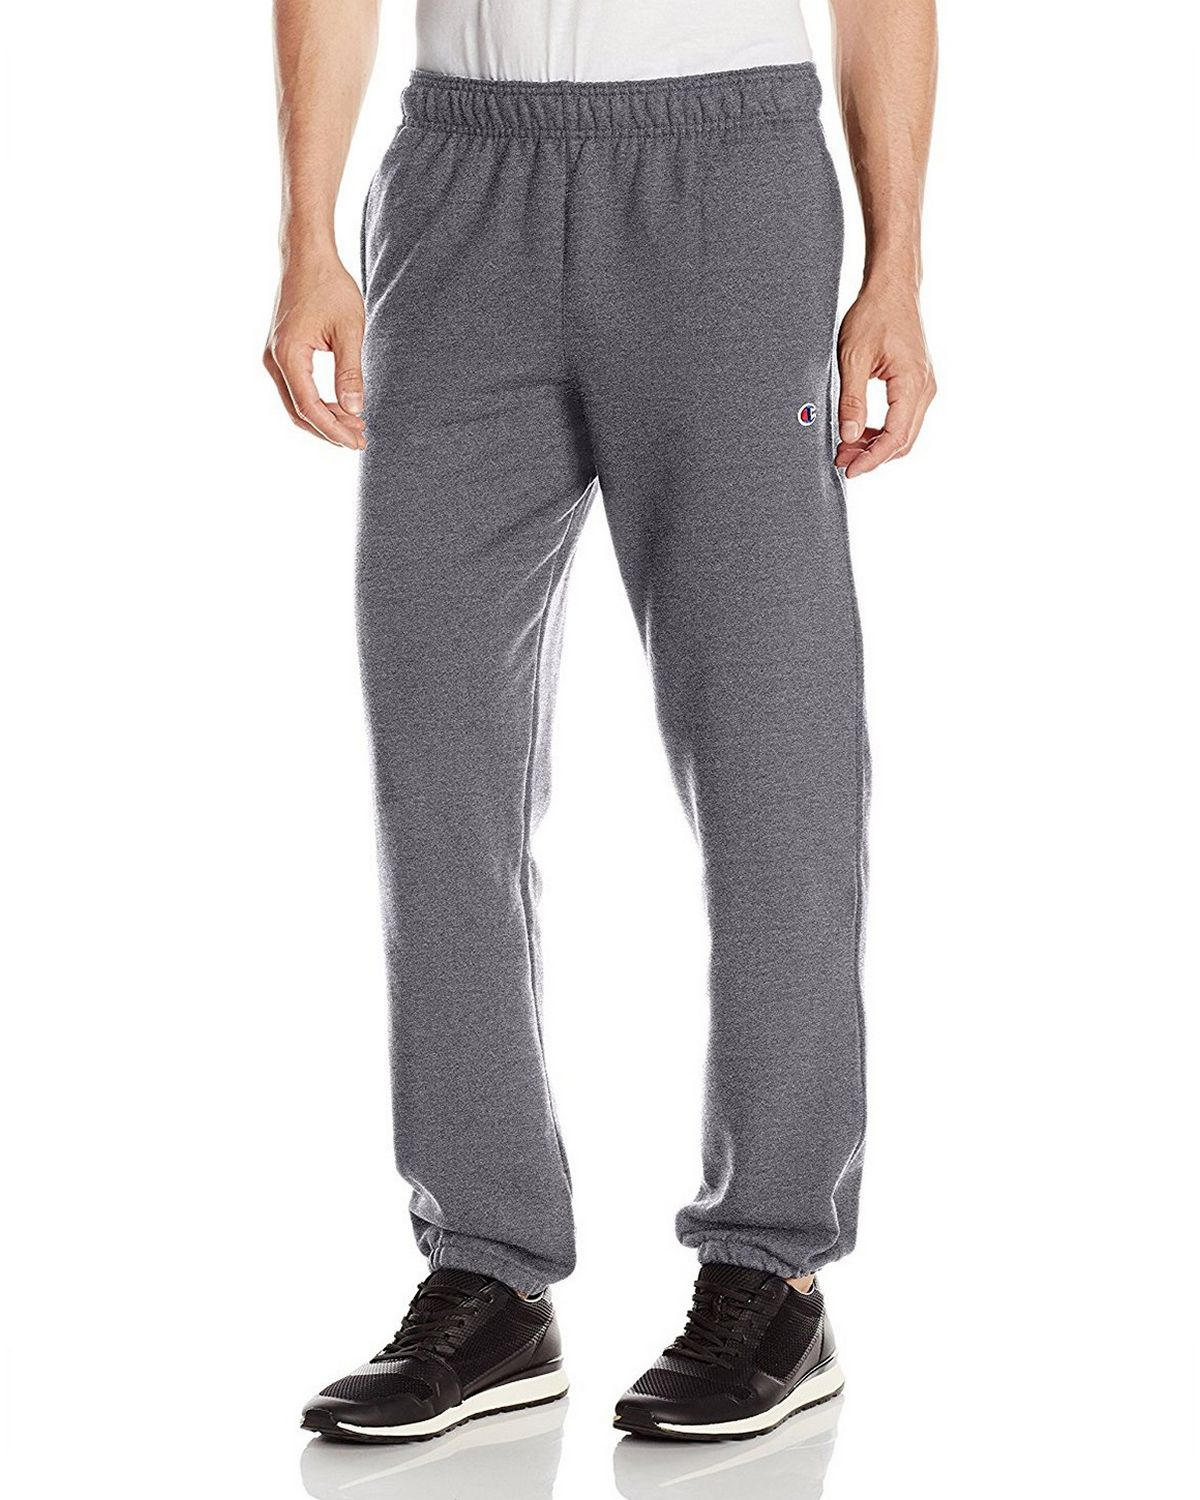 Champion P0894 Mens Powerblend Fleece Pants - Granite Heather - XL P0894